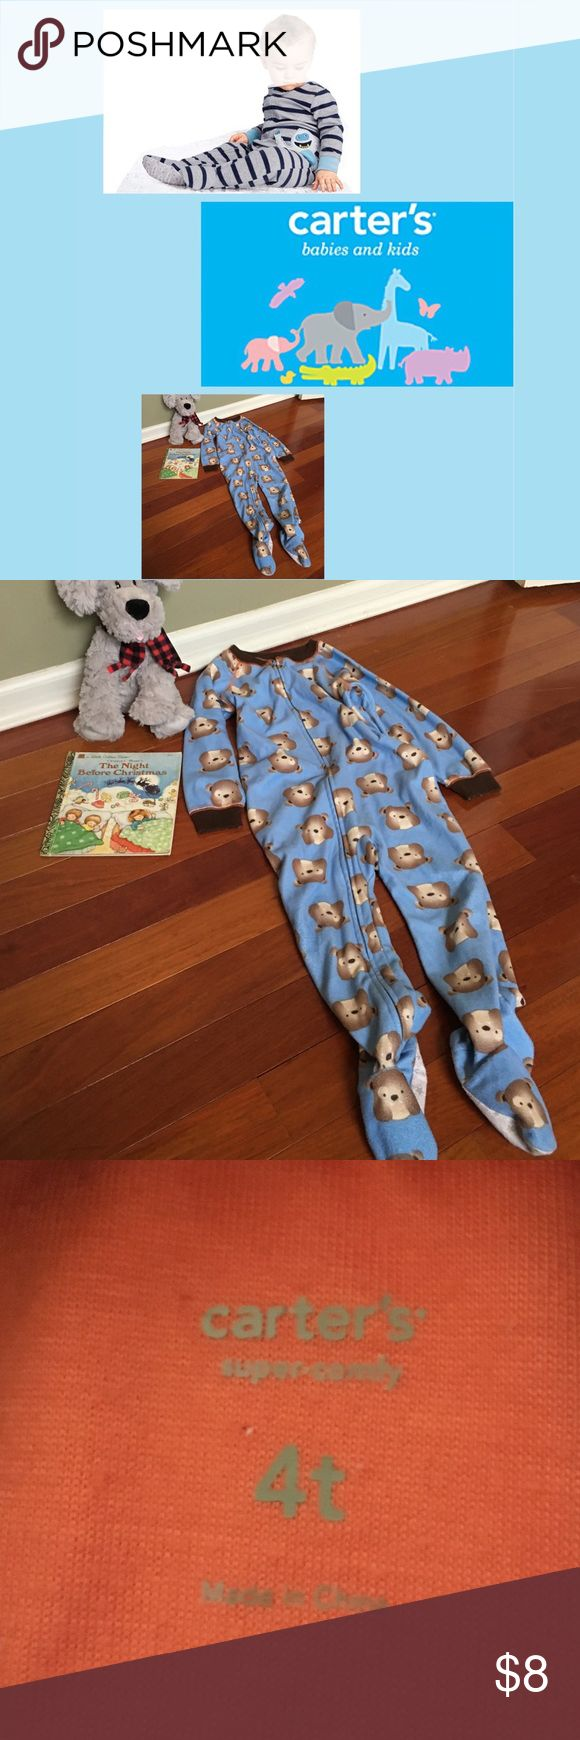 Carter's Blanket Sleeper Pajamas Fleece Super Cute Doggies  Fleece  Zip Up Footie PJs 1st photo contains images from the web for style idea.  🎉BUNDLE🎉 No props included || 😊 We are a smoke free hypoallergenic pet friendly home we have a Morkie. Carter's Pajamas